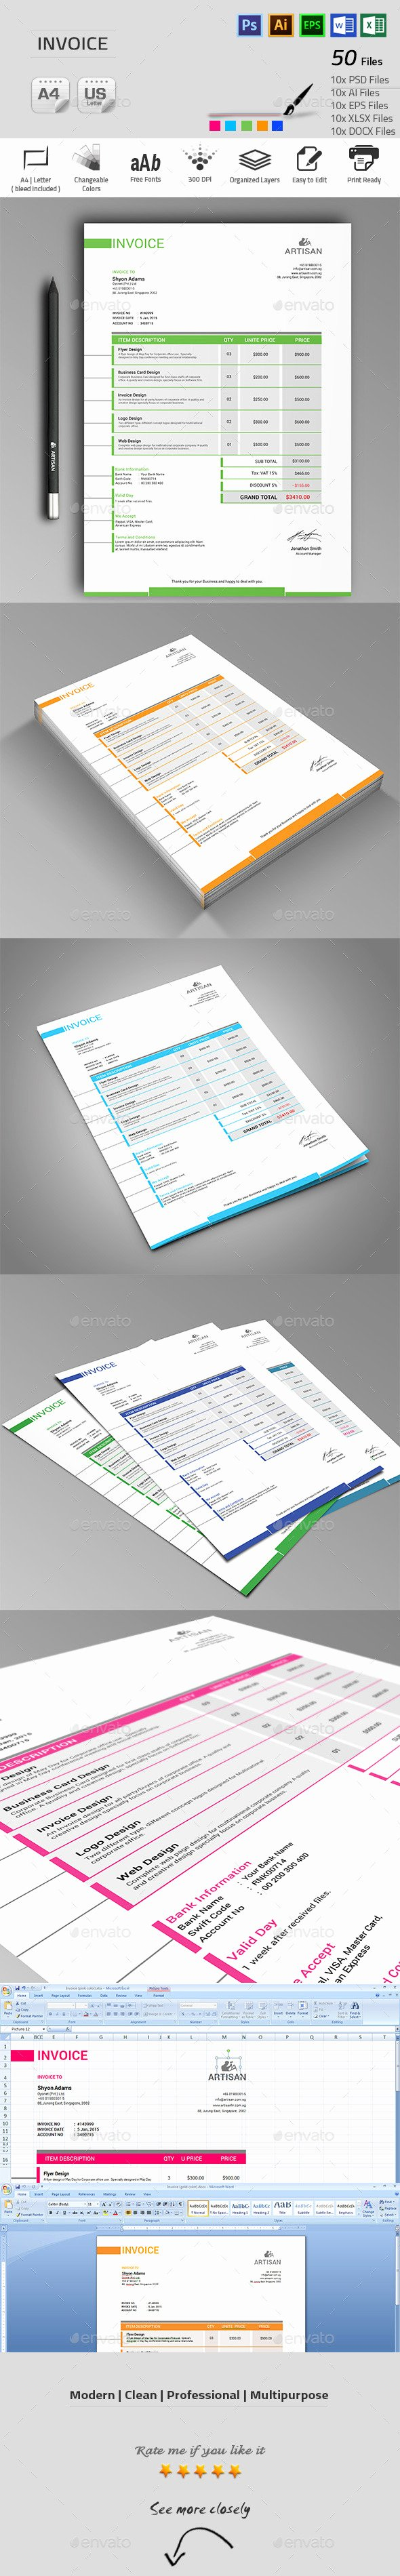 Graphic Design Quote Template Awesome Pin by Best Graphic Design On Proposal & Invoice Templates